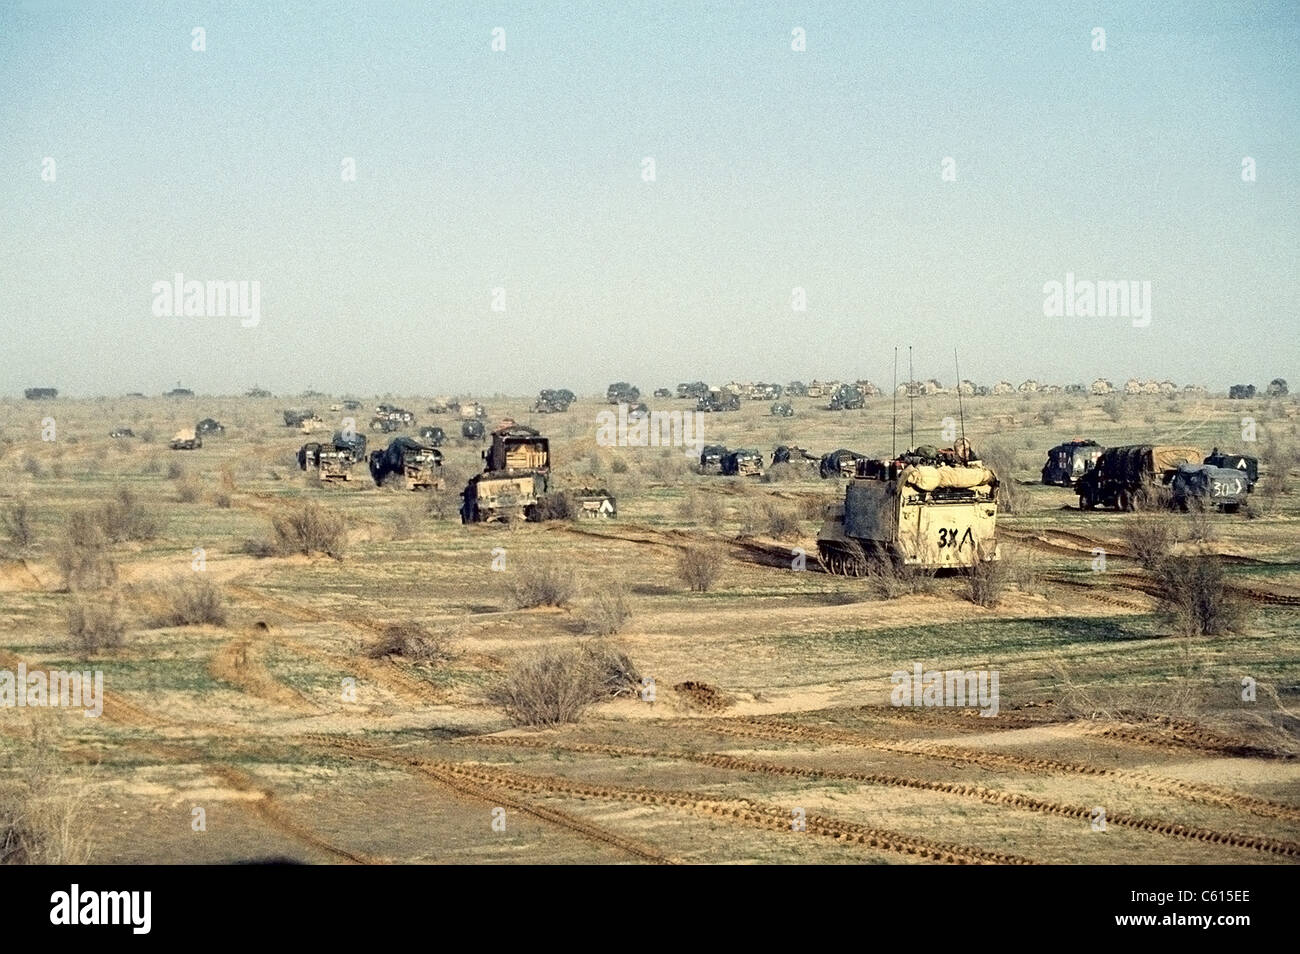 The 1st Armored Division 7th Corps advances on Iraqi forces during Operation Desert Storm. Feb. 25 1991. (BSLOC - Stock Image